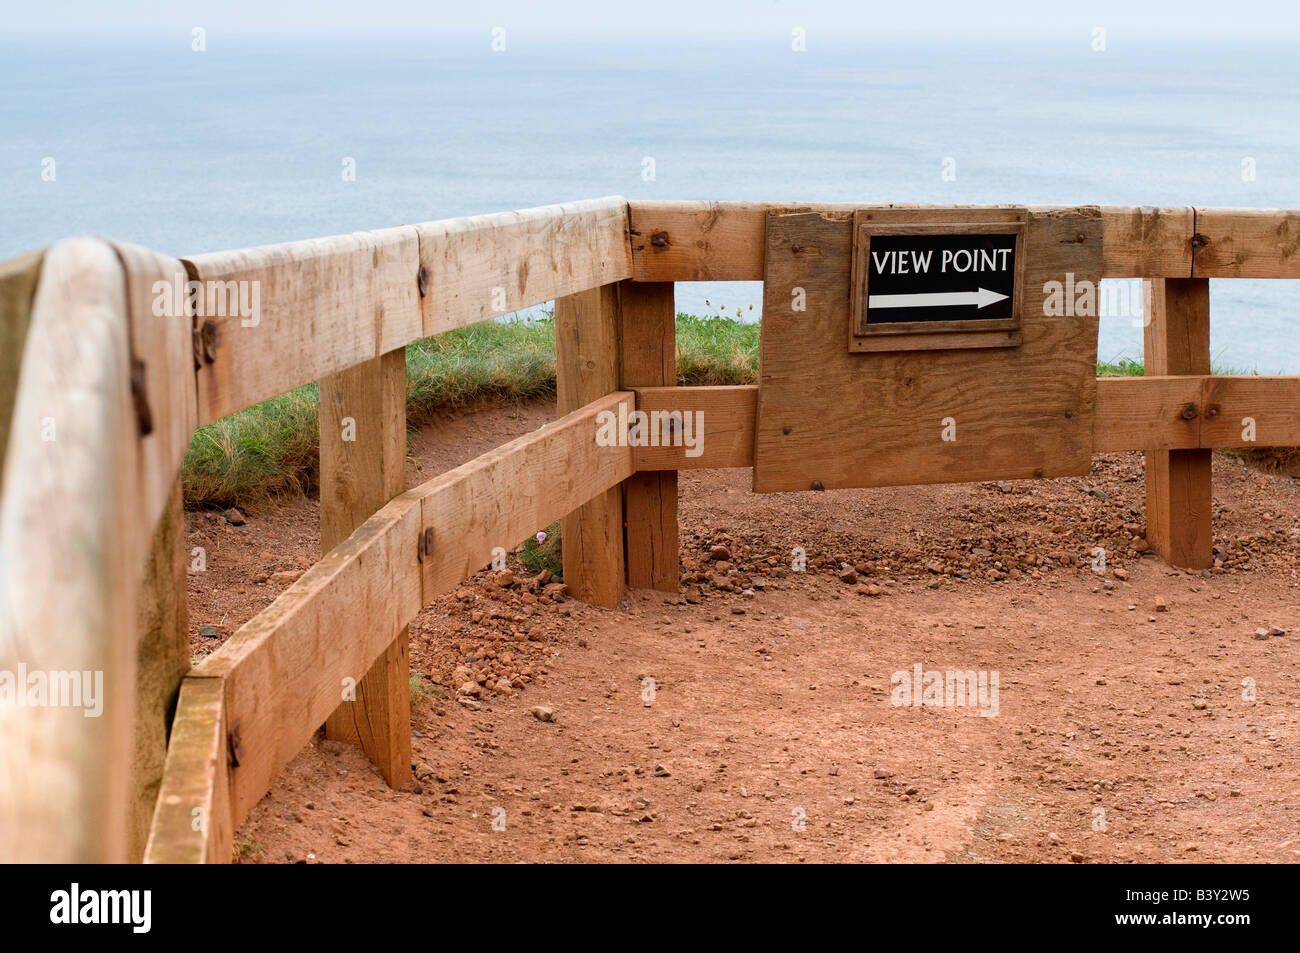 Comical Sign Reads 'View Point' Along Clifftop Walk. Giants Causeway, Northern Ireland - Stock Image